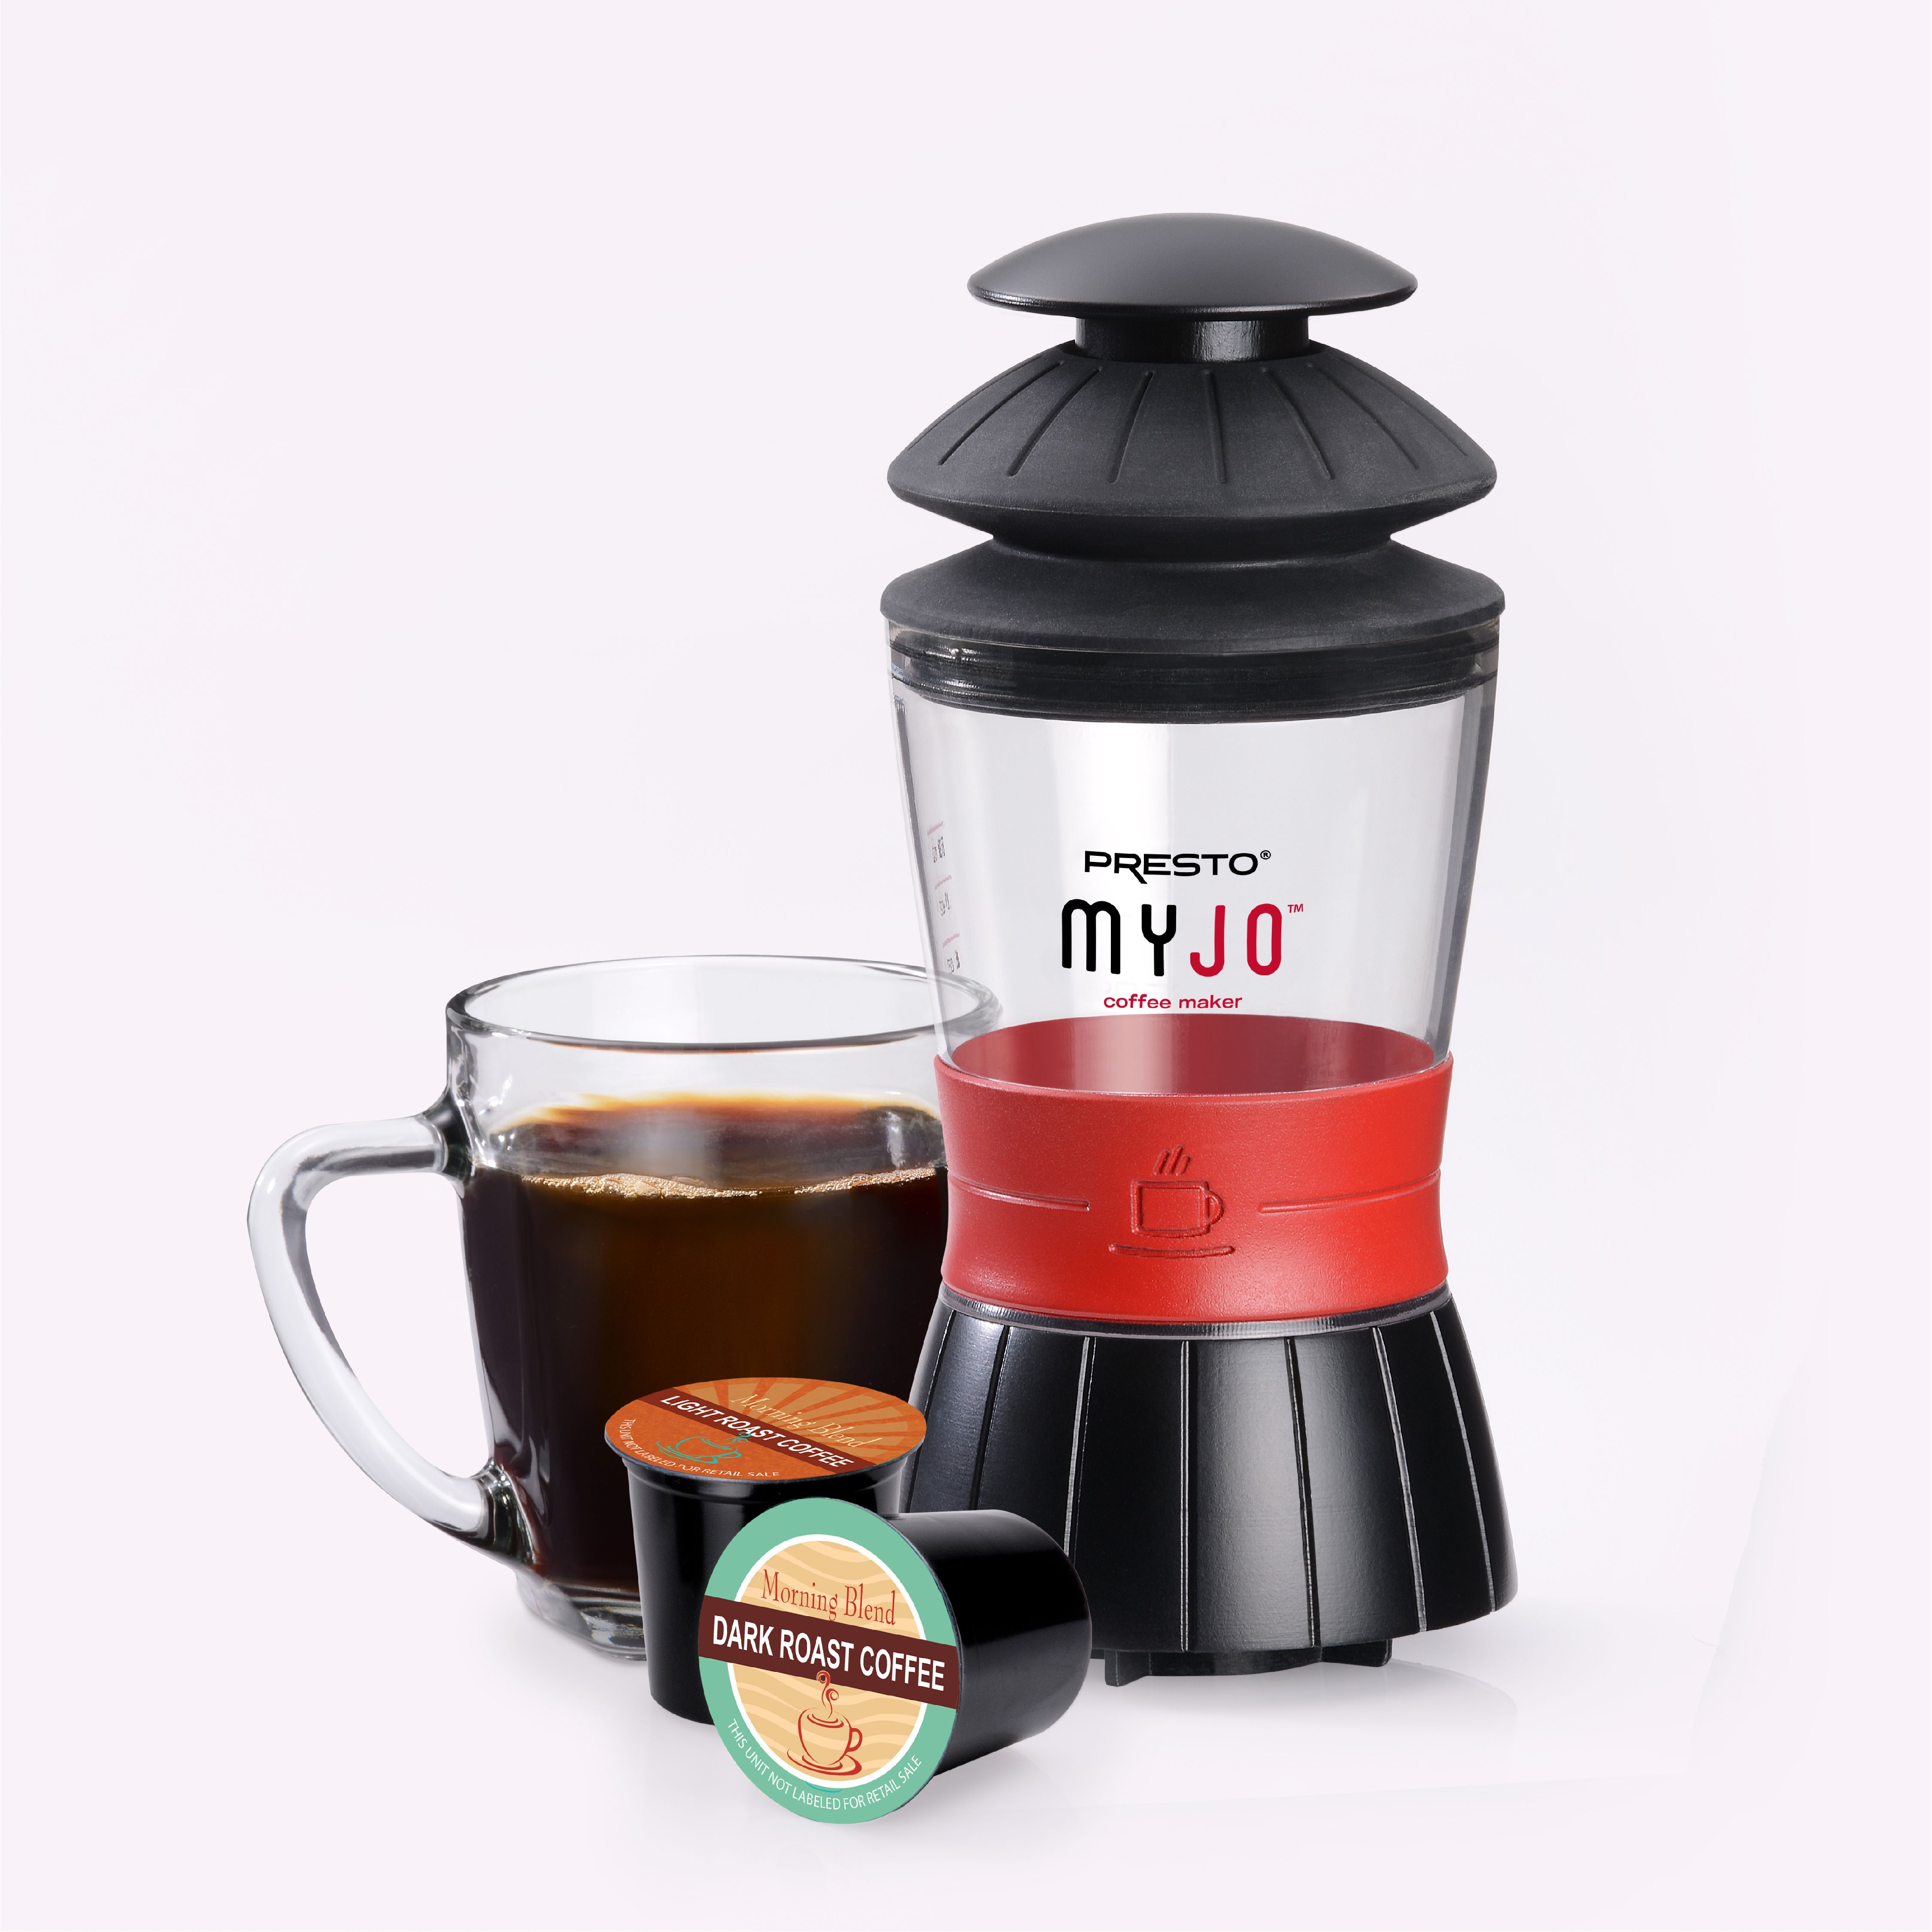 Coffee Makers Presto Products Keep It Simple/Timeless